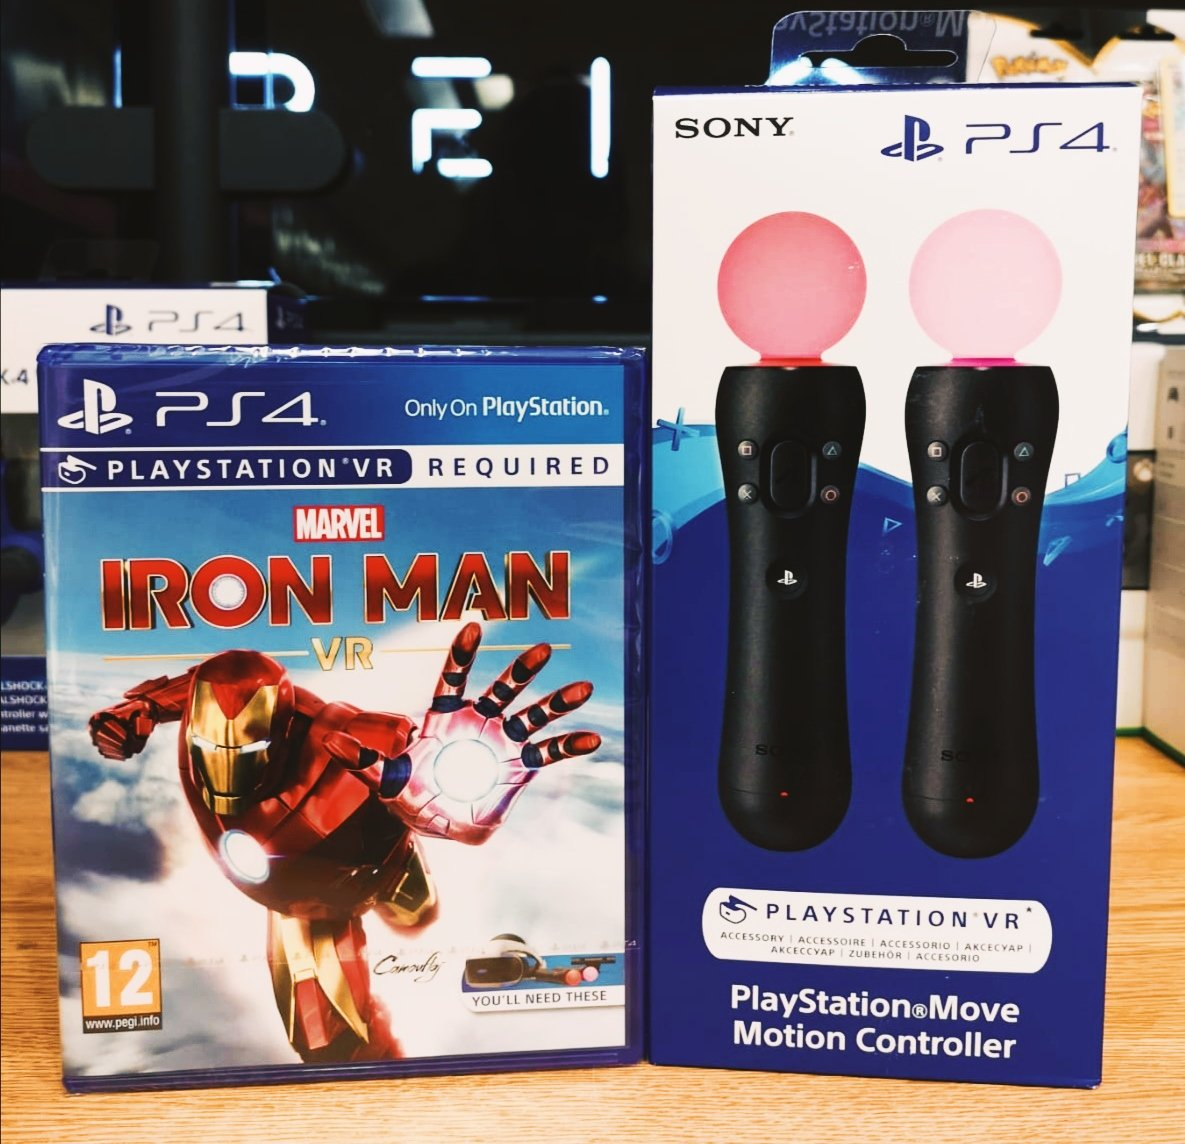 Iron Man VR is out today, folks!  Get the game for £34.99 and the Move Controllers for £79.99!  Make it all cheaper when you bring your trade with you! https://t.co/HAJq1eZUSk